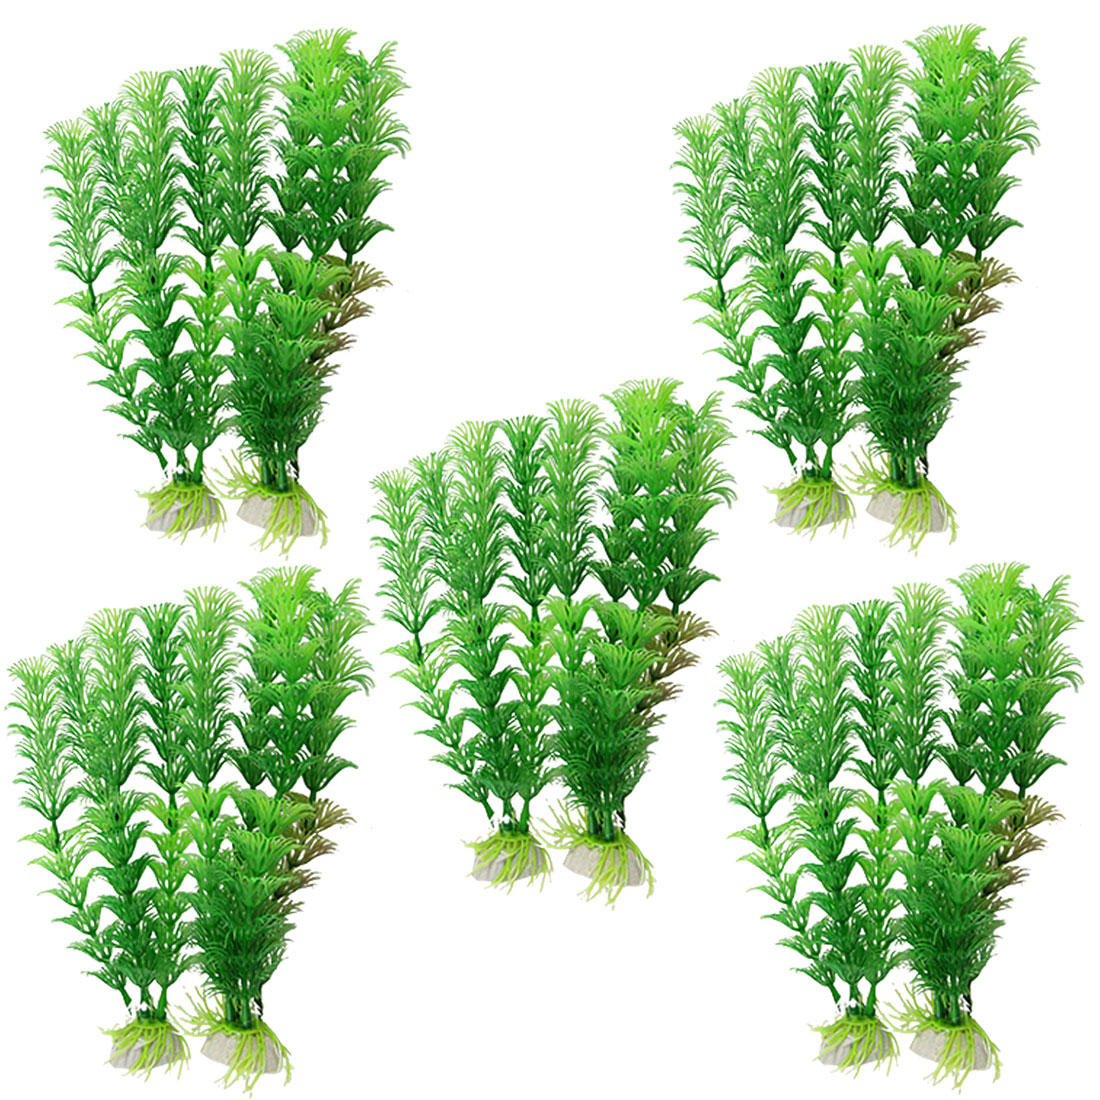 "10 Pcs 7 3/10"" Green Artificial Leaves Aquatic Plastic Plants Ornament for Fish Tank Aquarium"